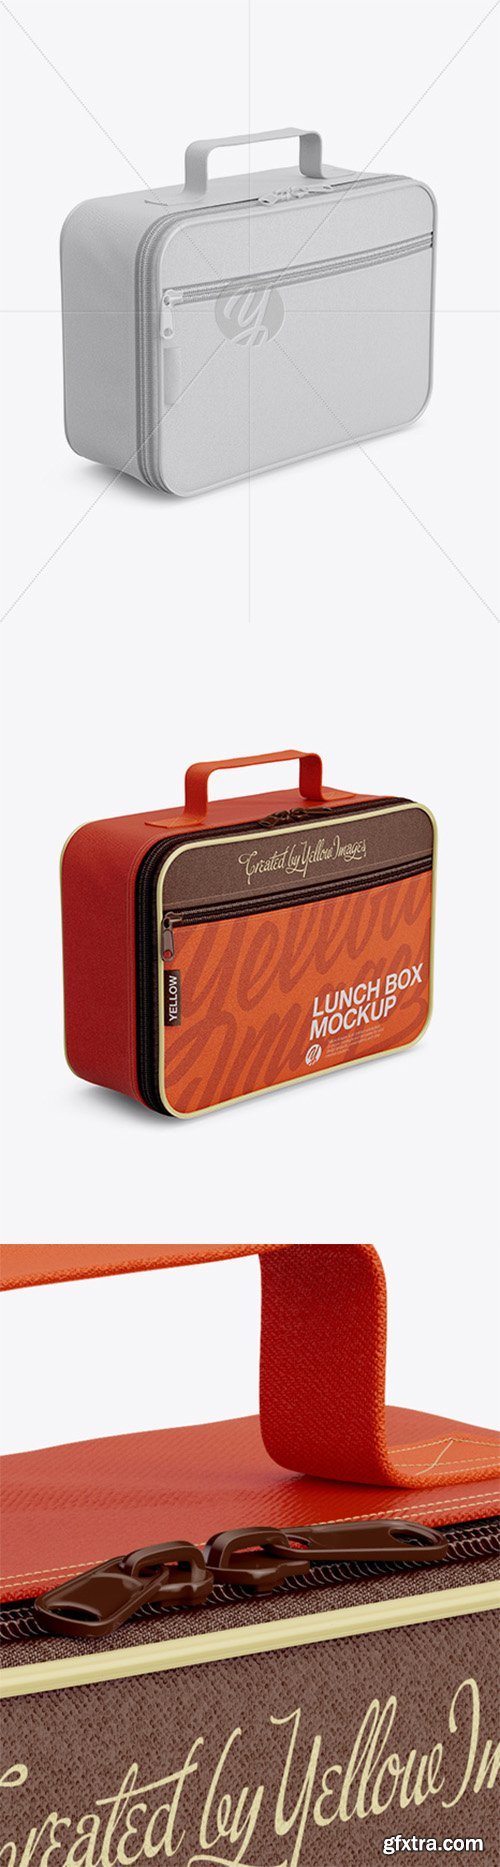 Lunch Box Mockup - Half Side View 23023